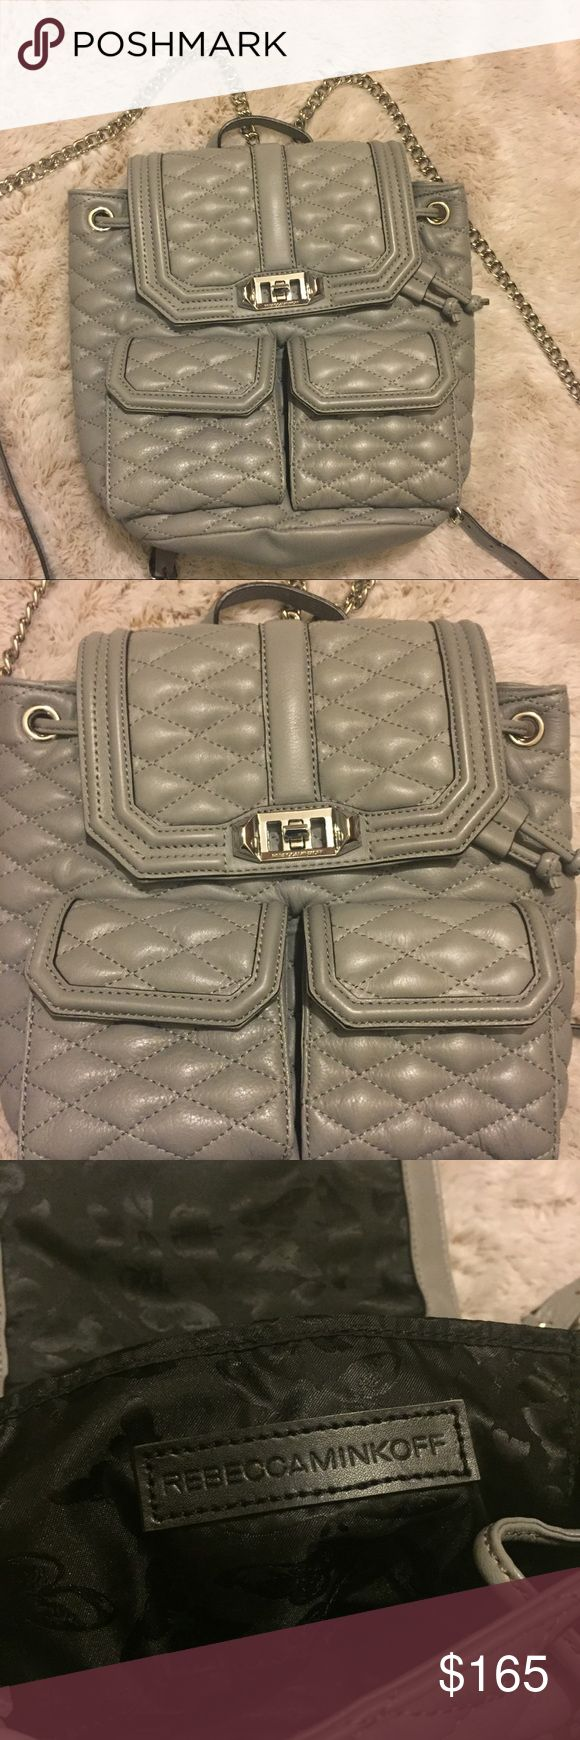 Rebecca Minkoff Grey Quilted Leather Mini Backpack A cute Rebecca Minkoff grey quilted leather backpack, this backpack is in perfect condition no signs of wear or pen stains, a cute butterfly black print is on the inside. It had two magnet closing pockets on the front a drawstring to close and a polished turn lock that fastens the top. The straps are silver chain and are adjustable! The material is Quilted cowhide  Height 10.25in/26cm Length—10.25in/26 cm Depth-3.5in/9cm Rebecca Minkoff Bags…